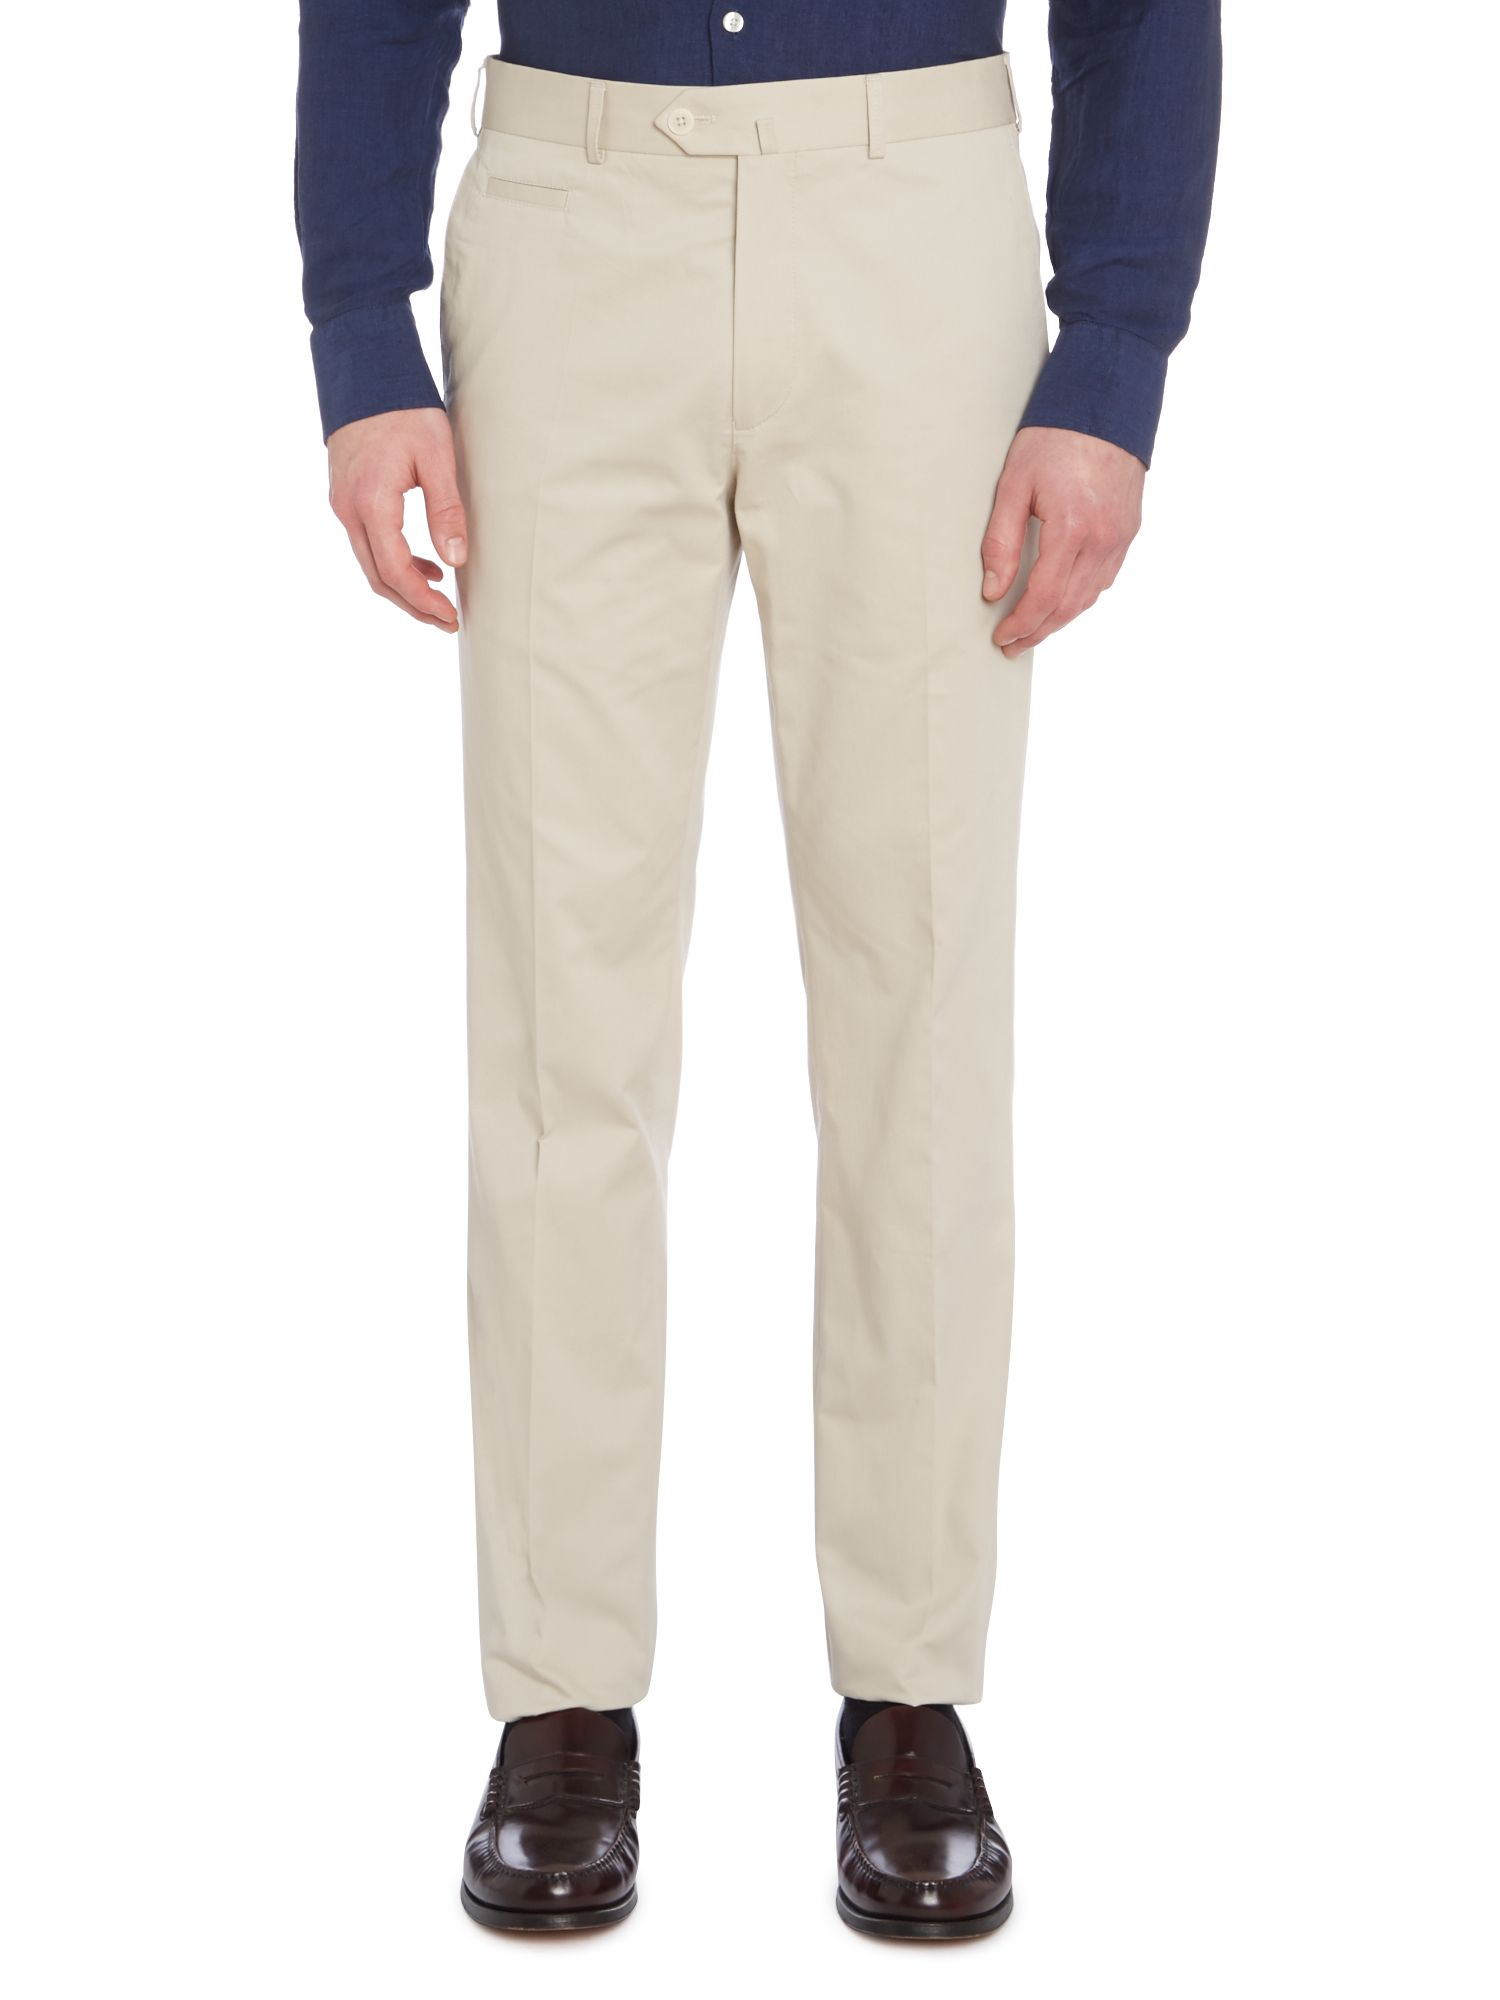 Contemporary cotton chino